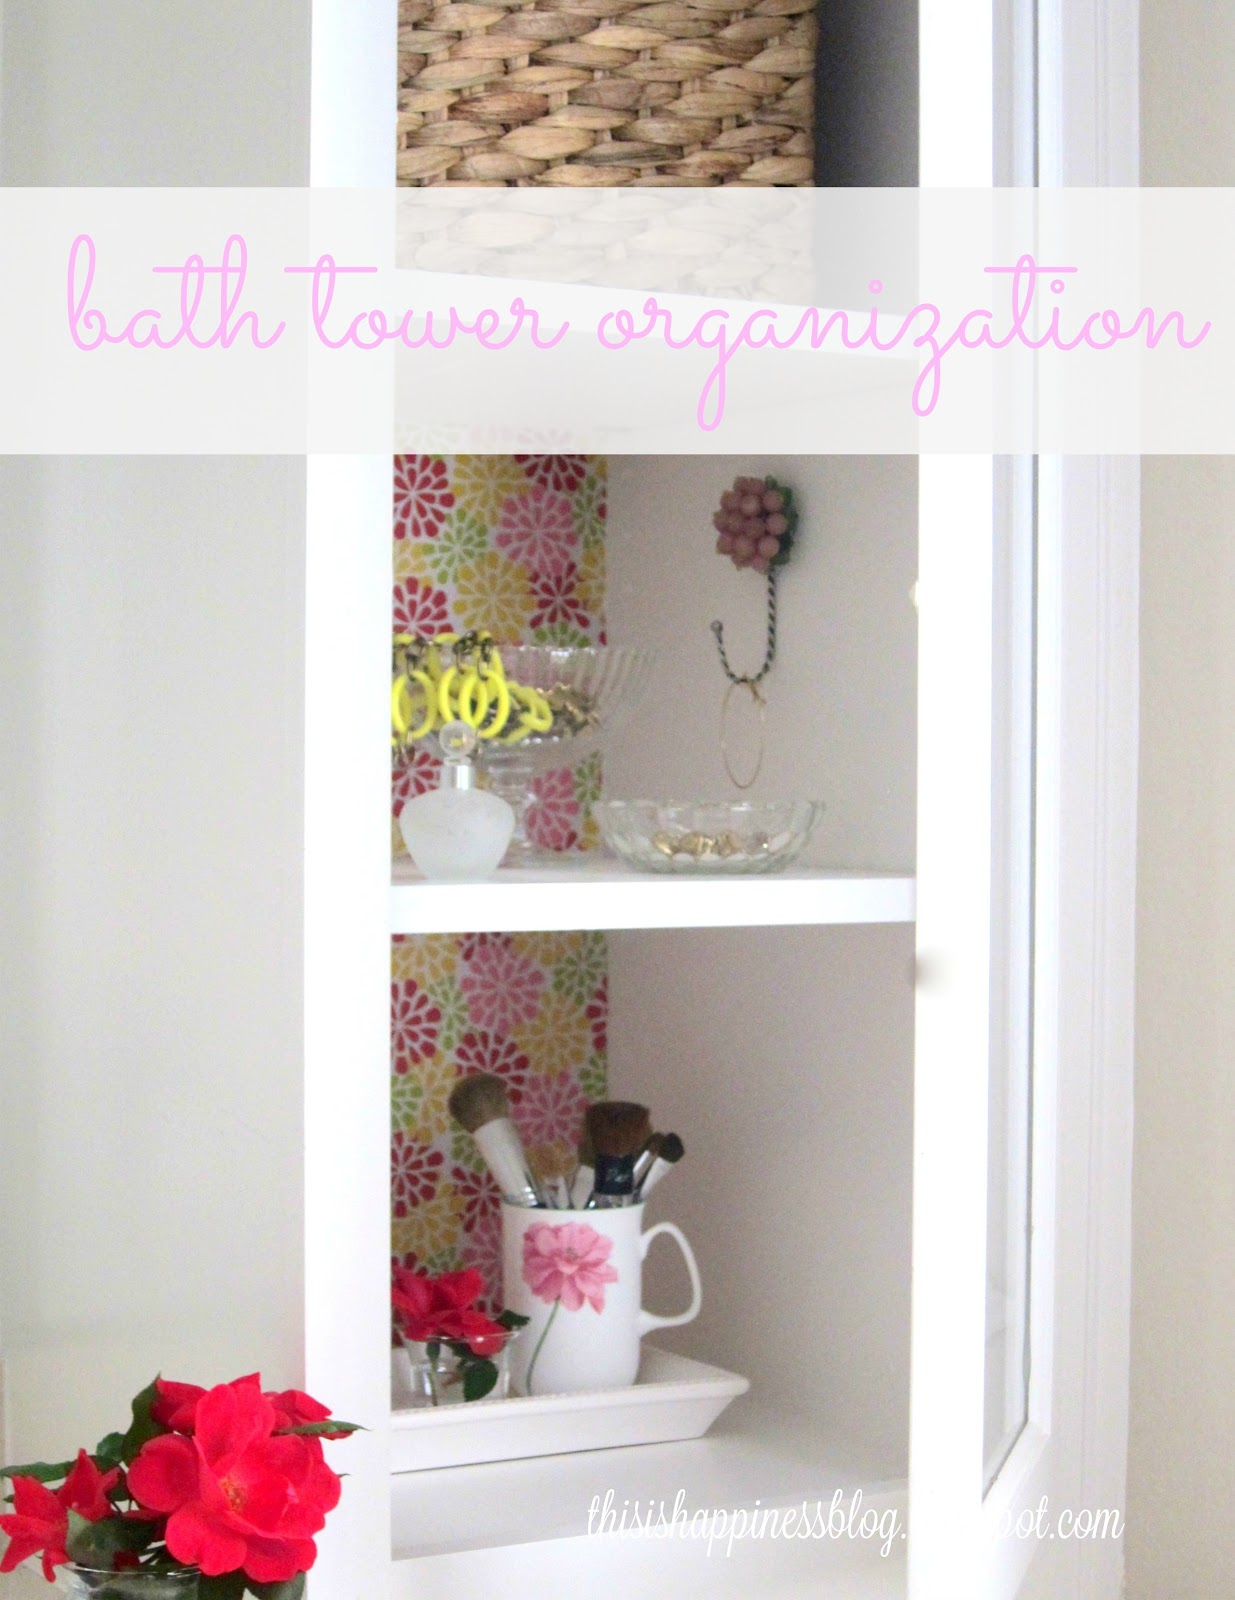 Creative  Cabinets To Make A ClutterFree Bathroom Space  Home Design Lover